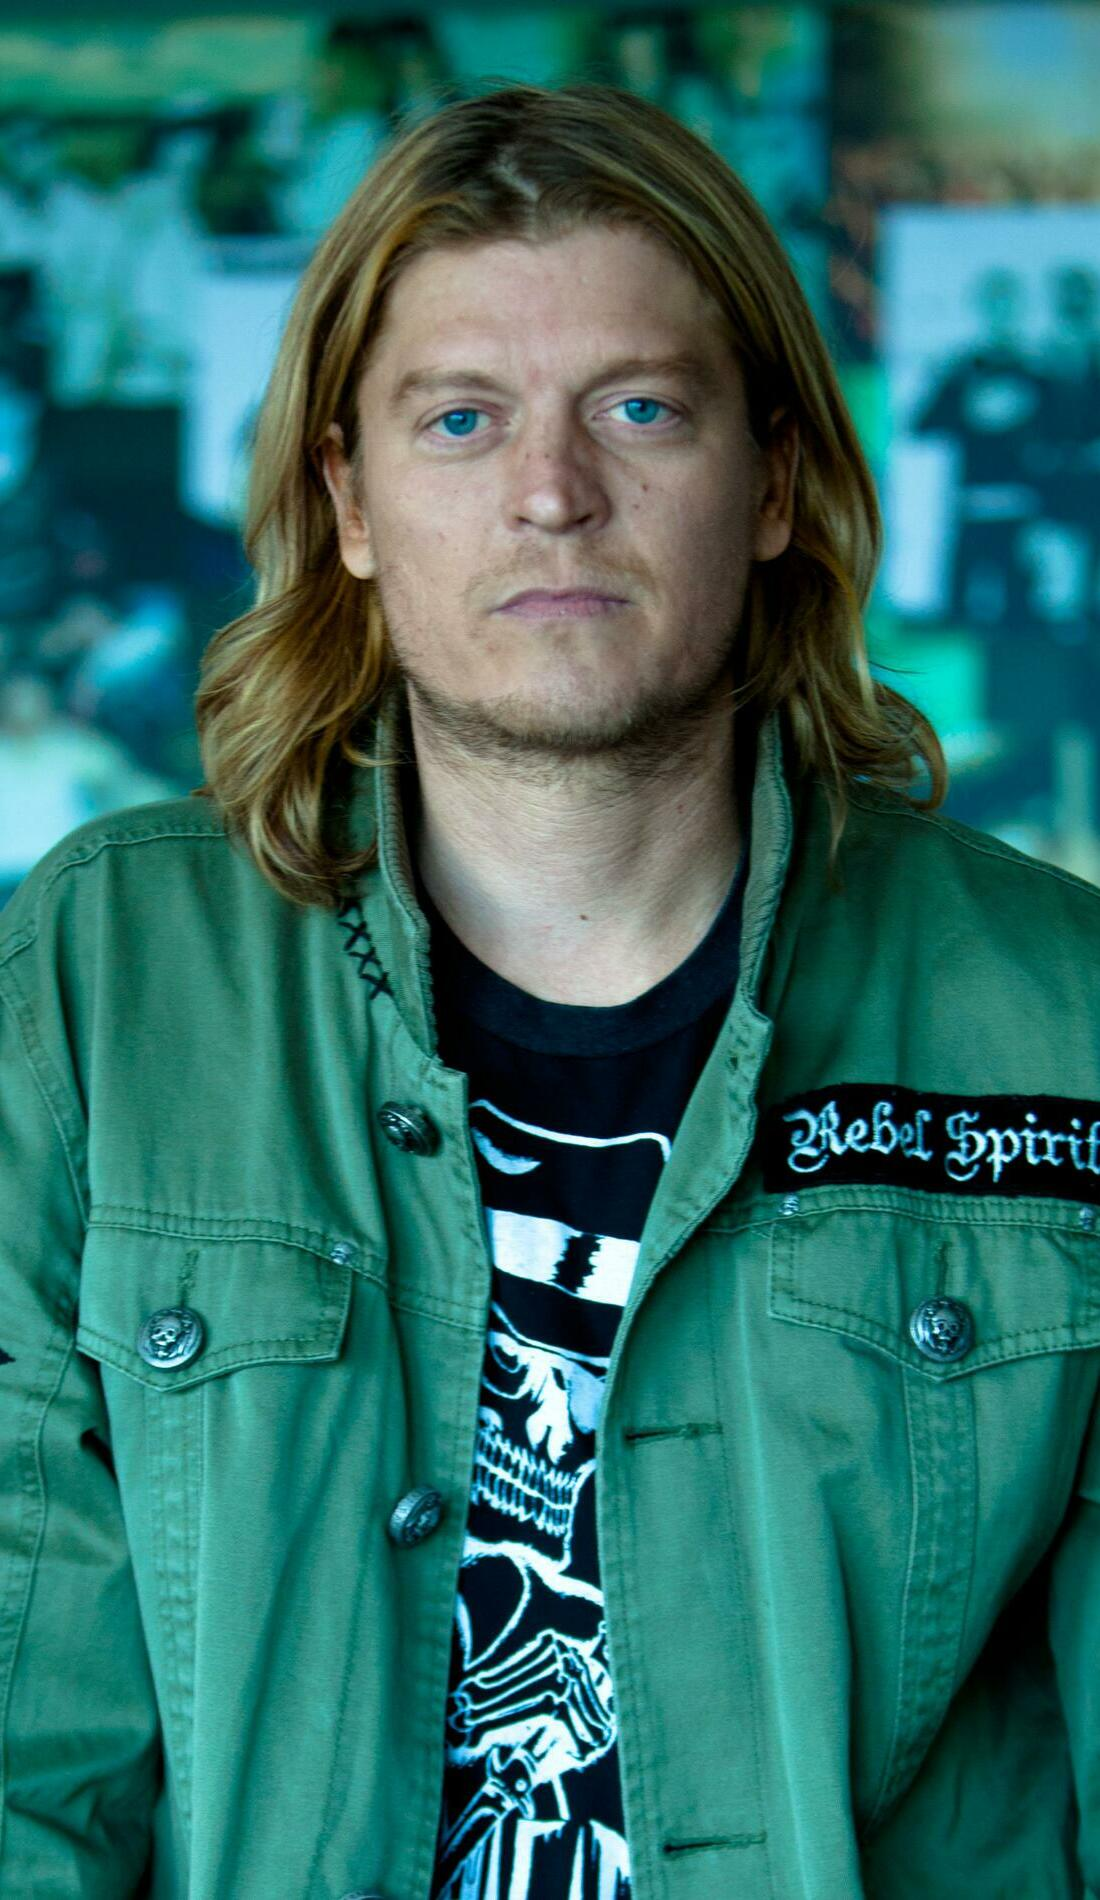 A Puddle Of Mudd live event